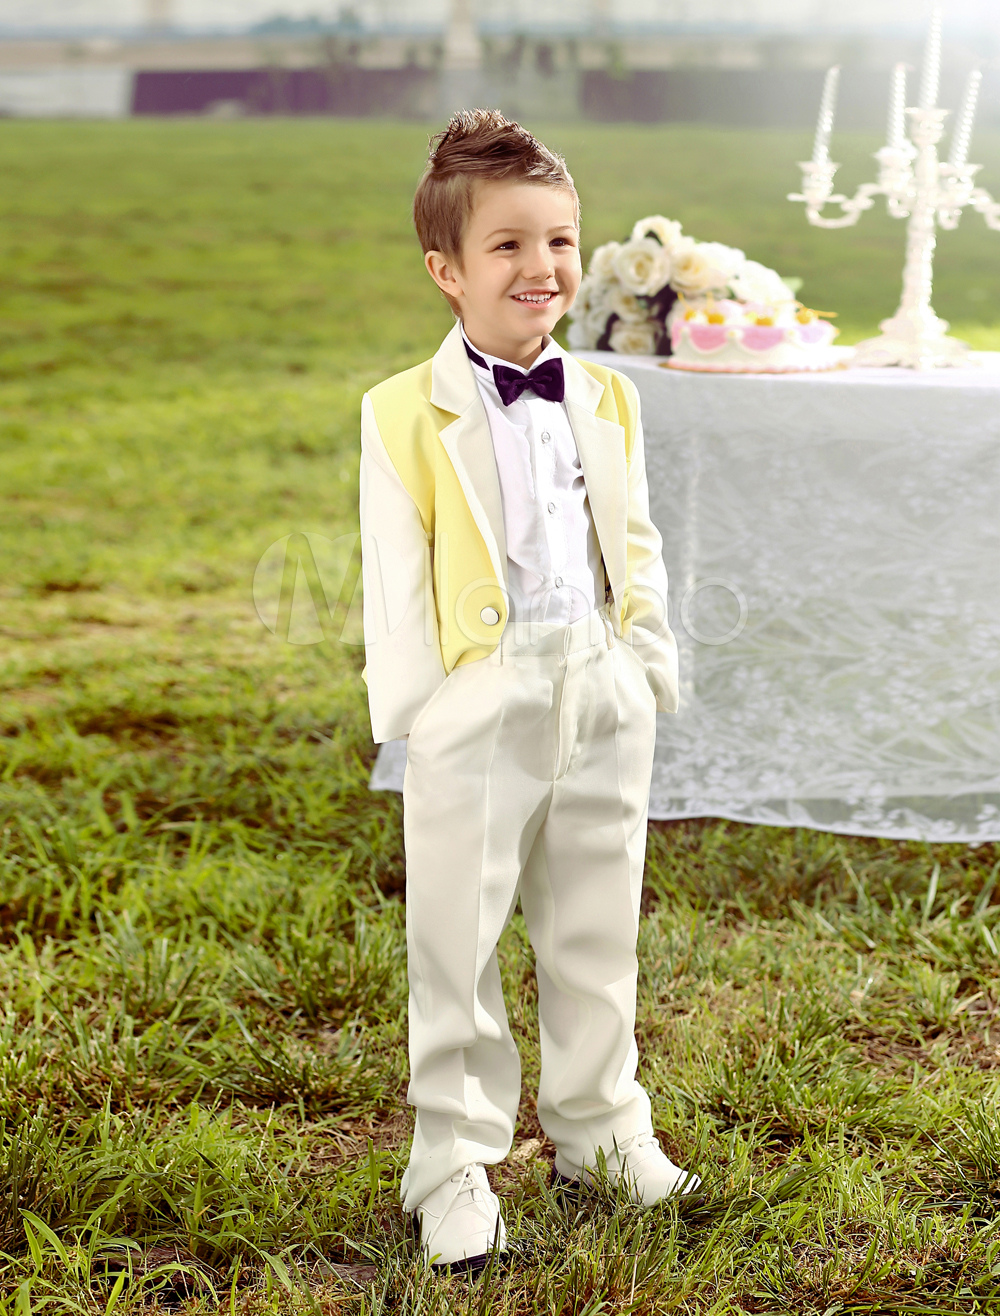 9042e04fa762 Baby Boy Suit Set Kids Wedding Tuxedo Yellow Jacket Pants Shirts Bow Tie 4  Pcs Ring Bearer Suits - Milanoo.com